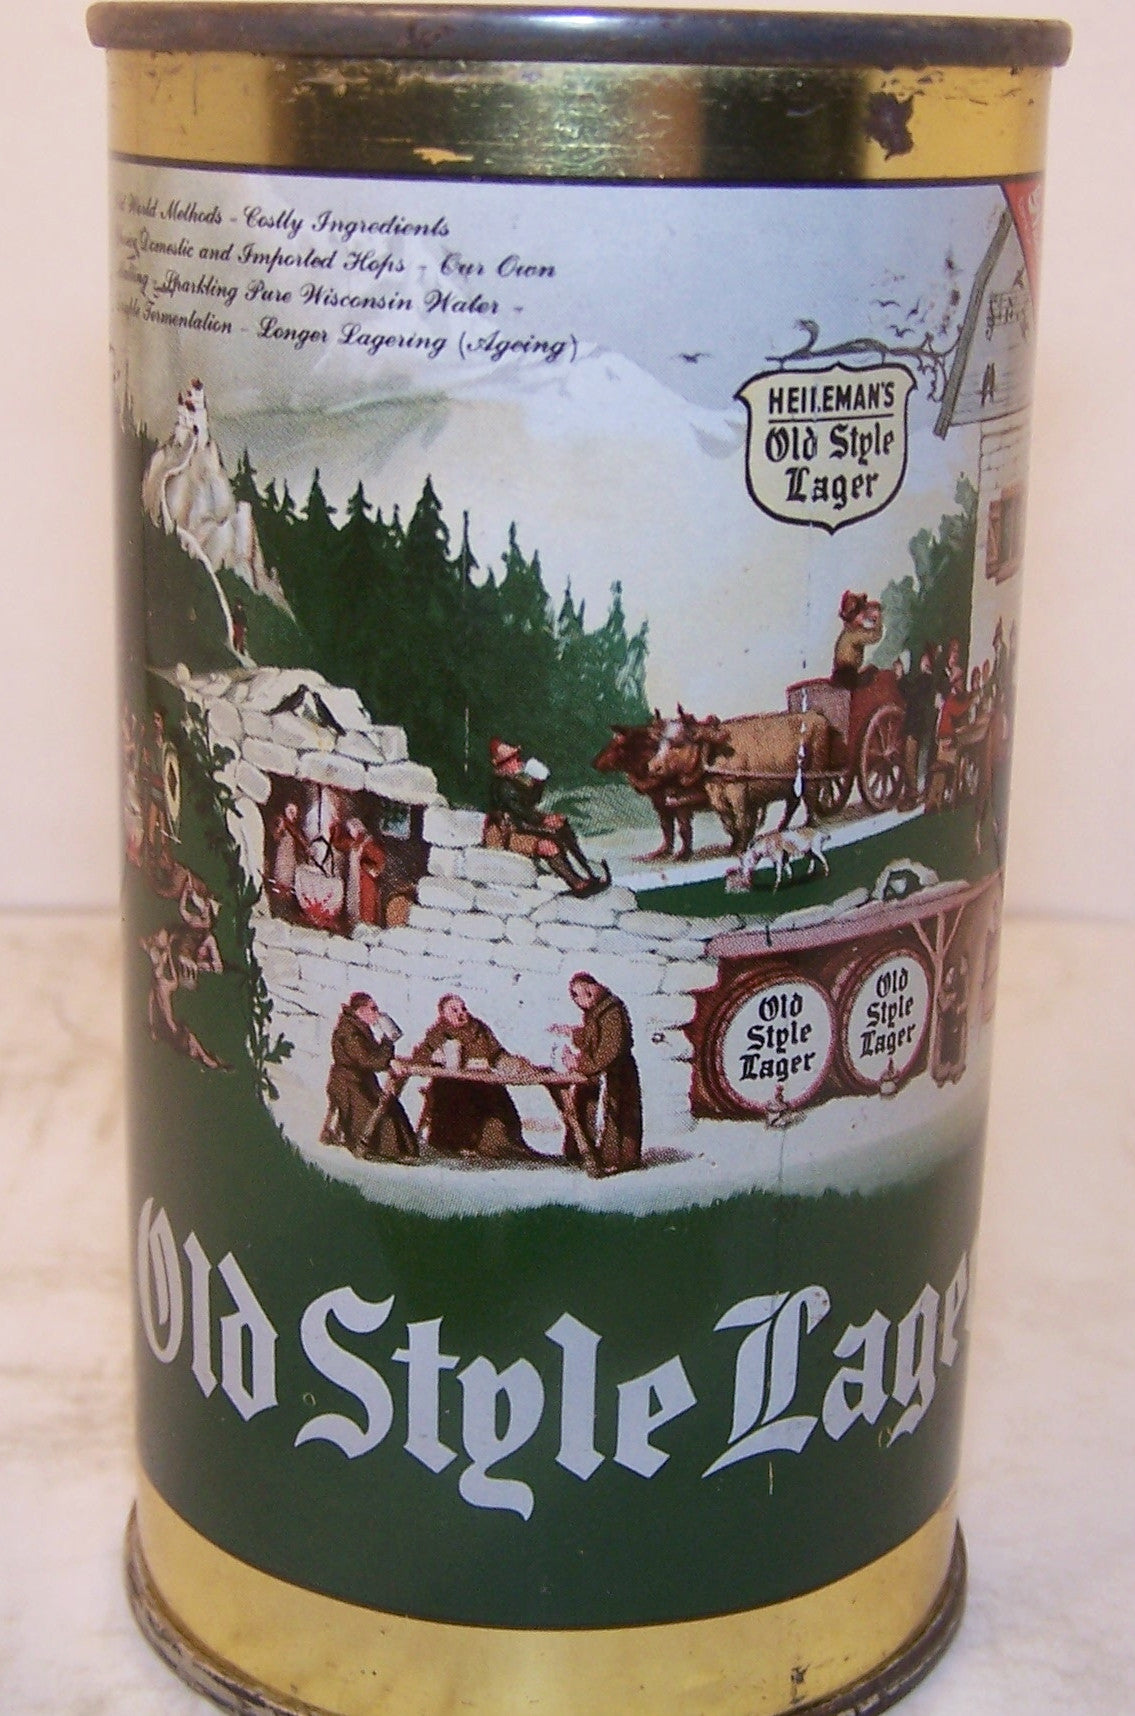 Old Style Lager Beer, USBC 108-9, Grade 1 Sold on 05/05/16